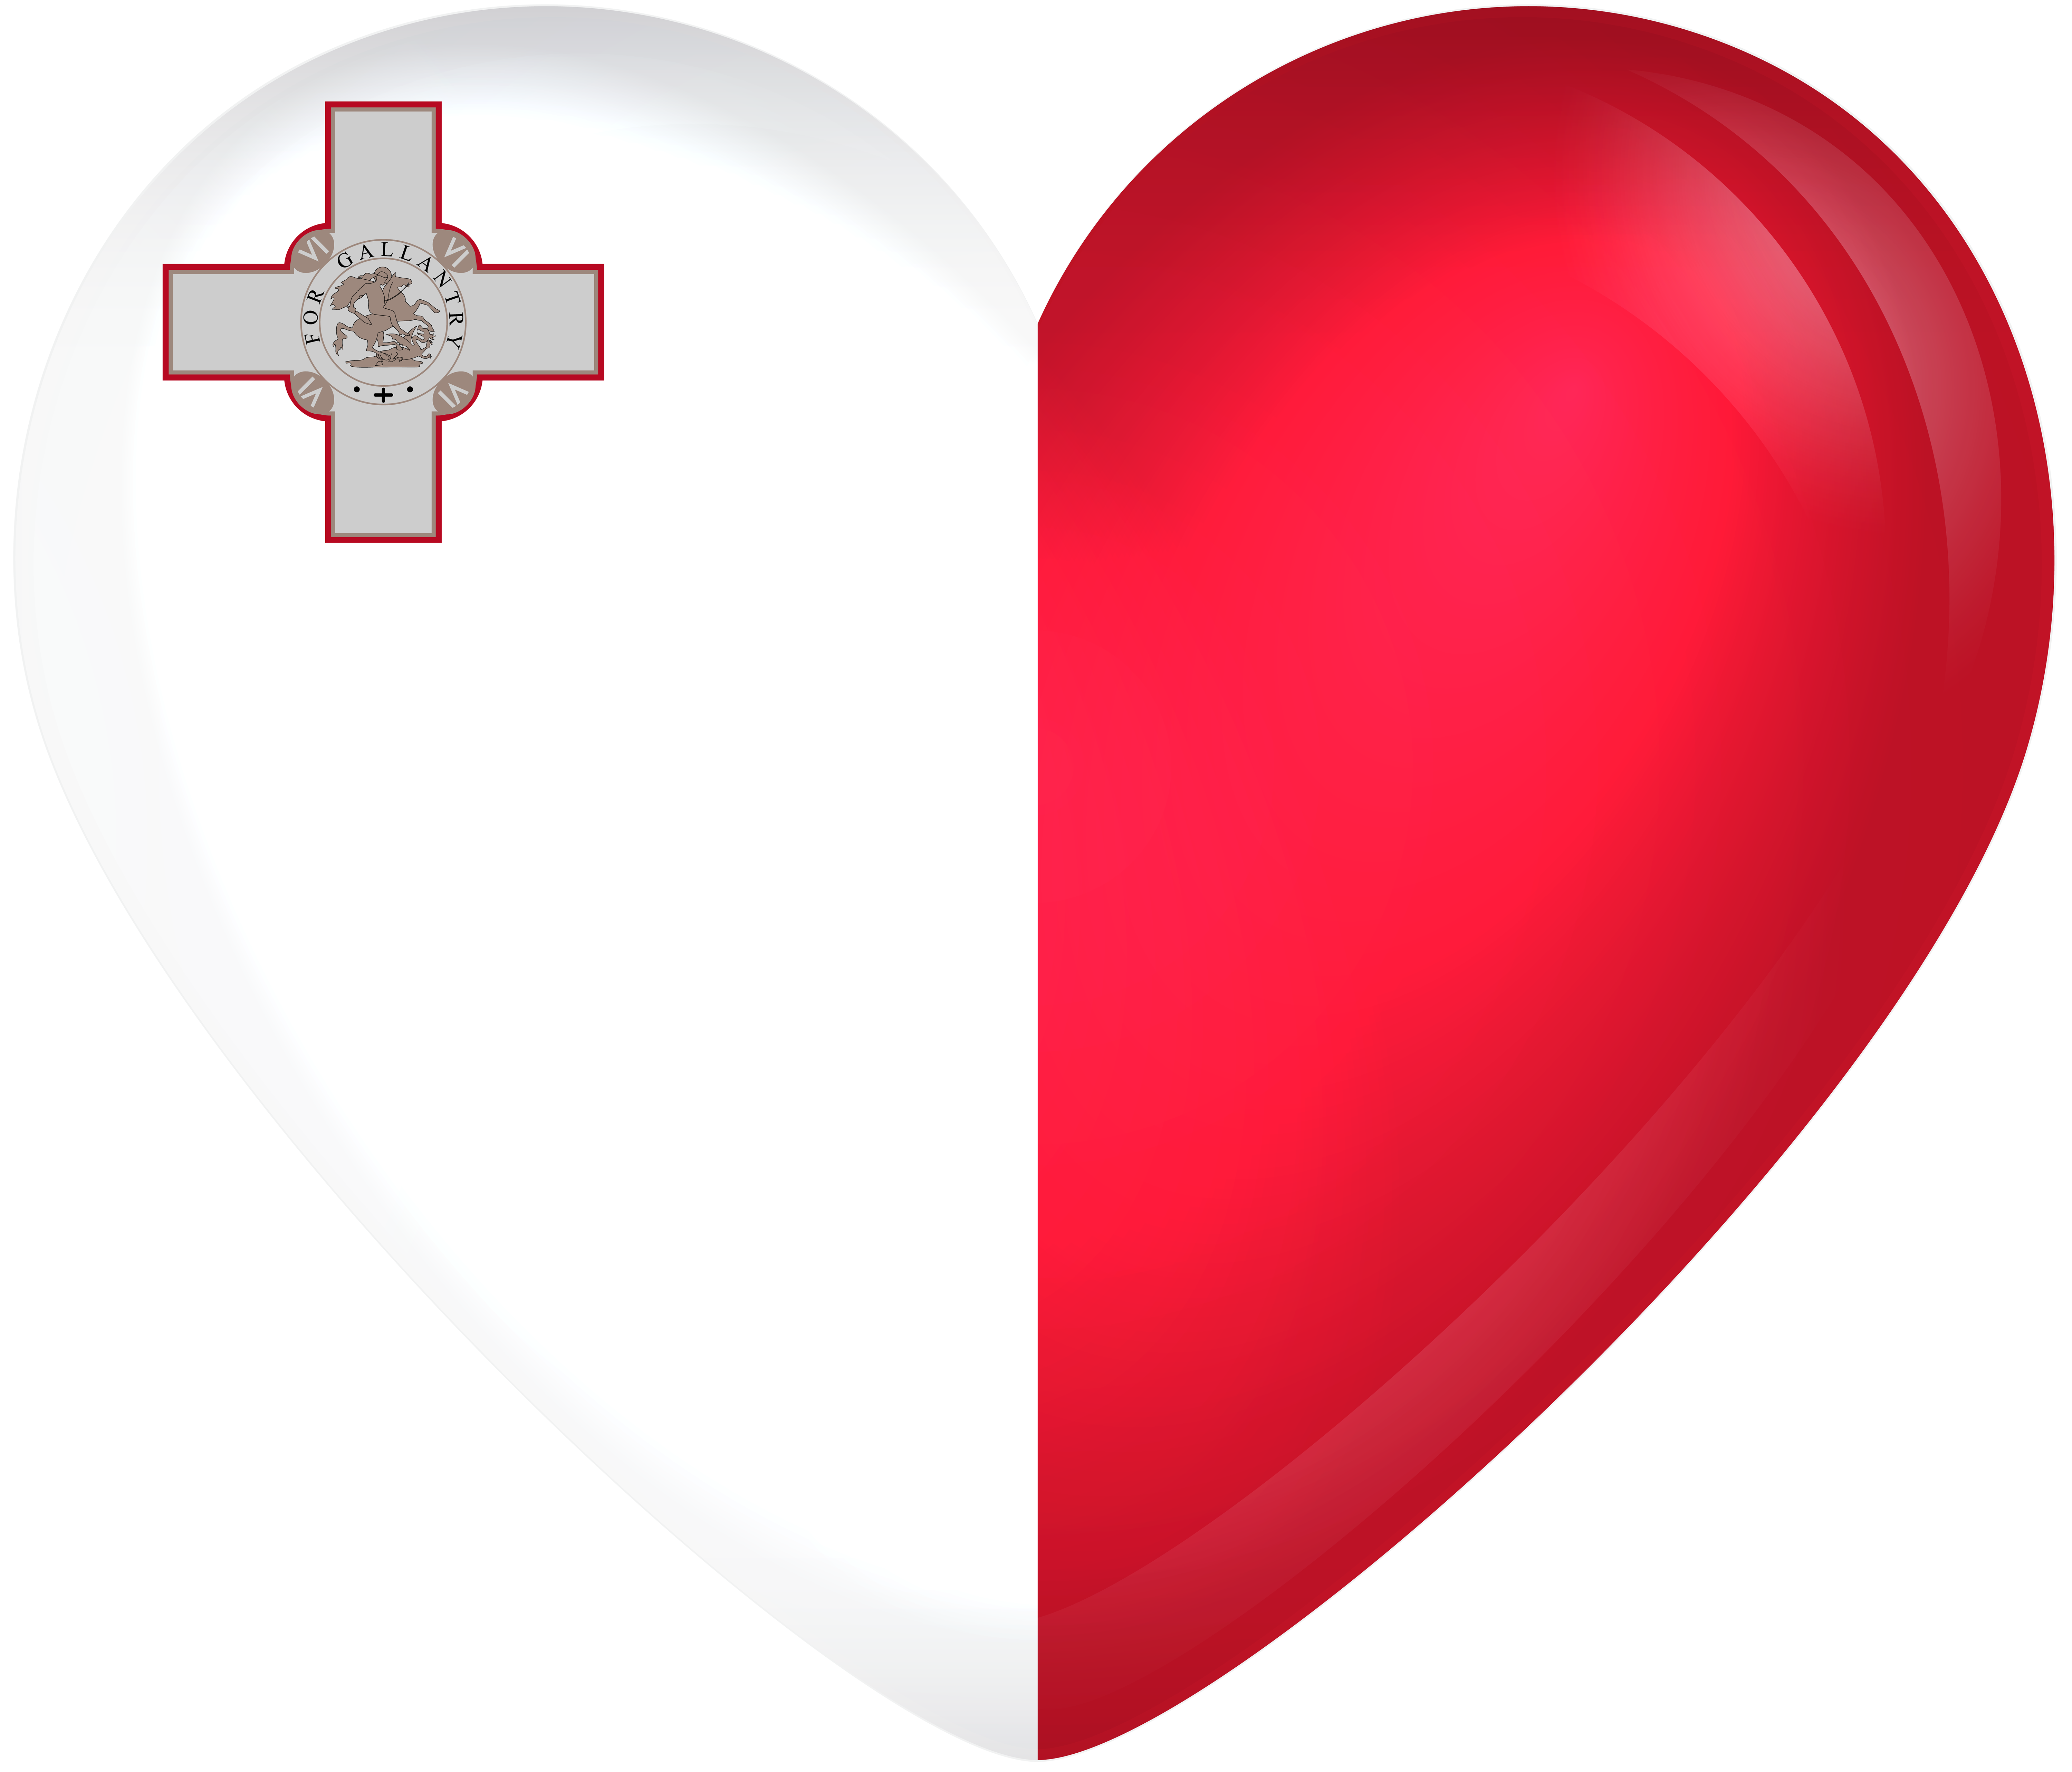 Heart with a cross clipart clip art freeuse stock Malta Large Heart Flag | Gallery Yopriceville - High-Quality Images ... clip art freeuse stock